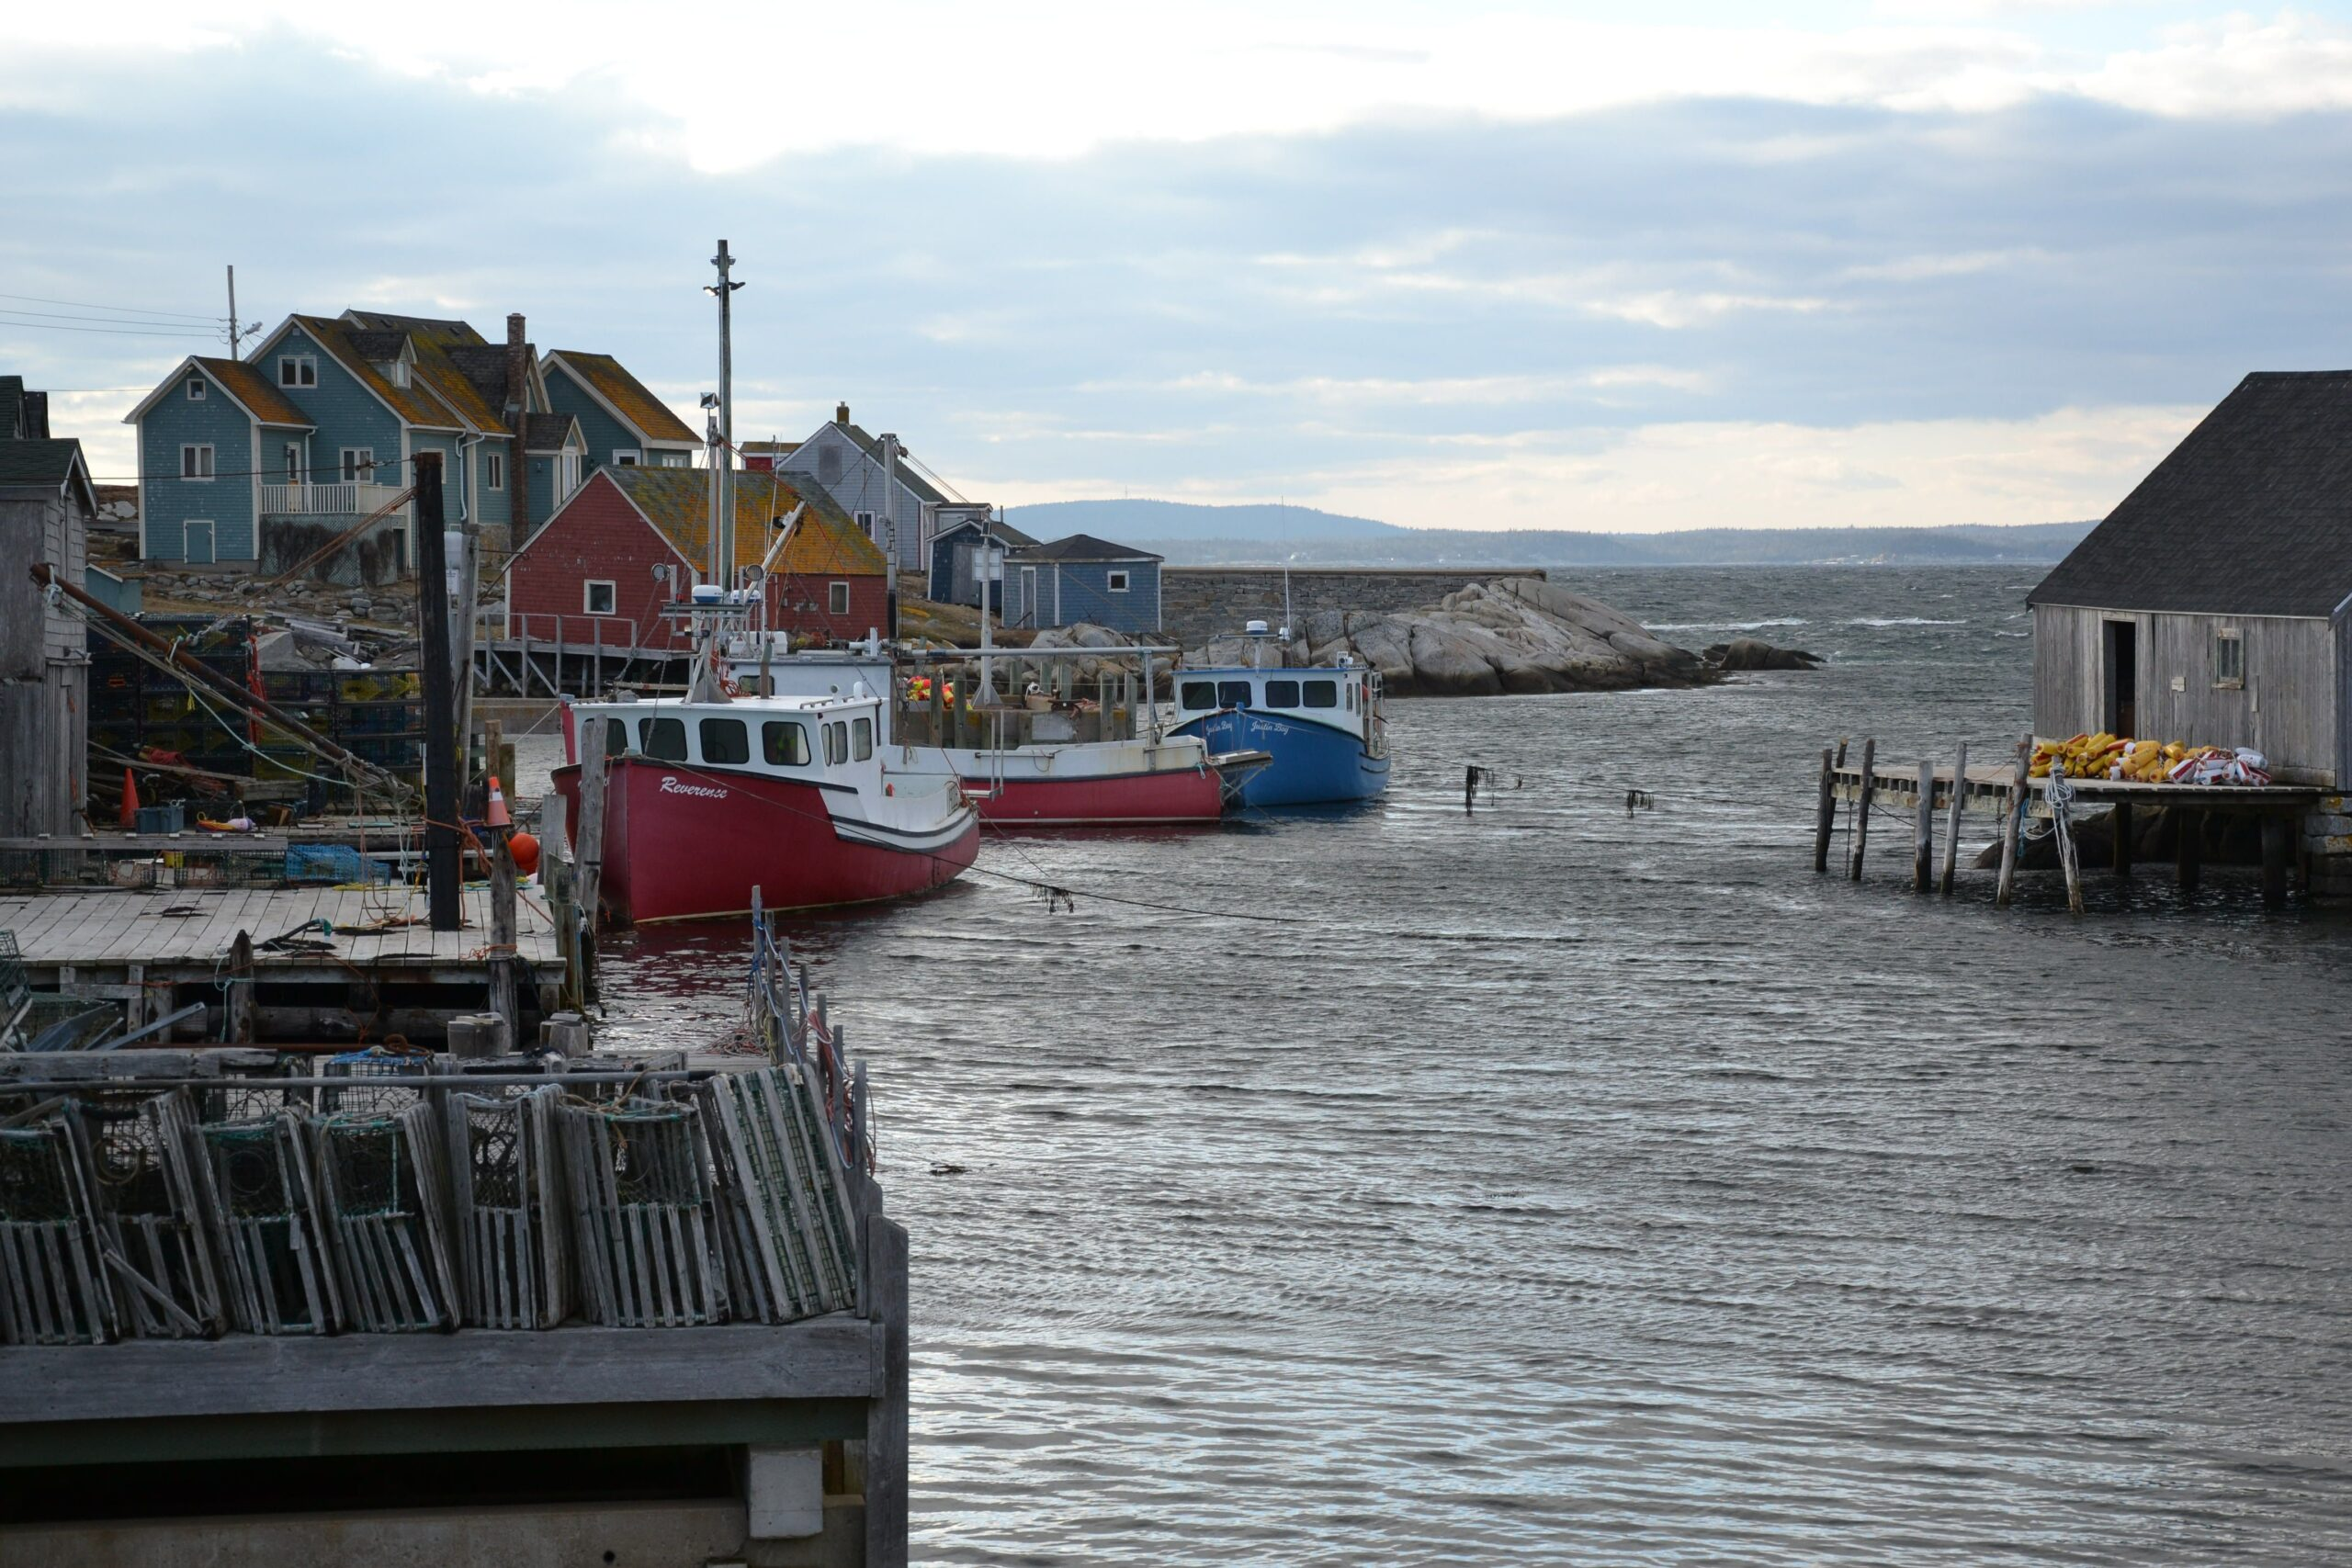 Inlet with fishing boats